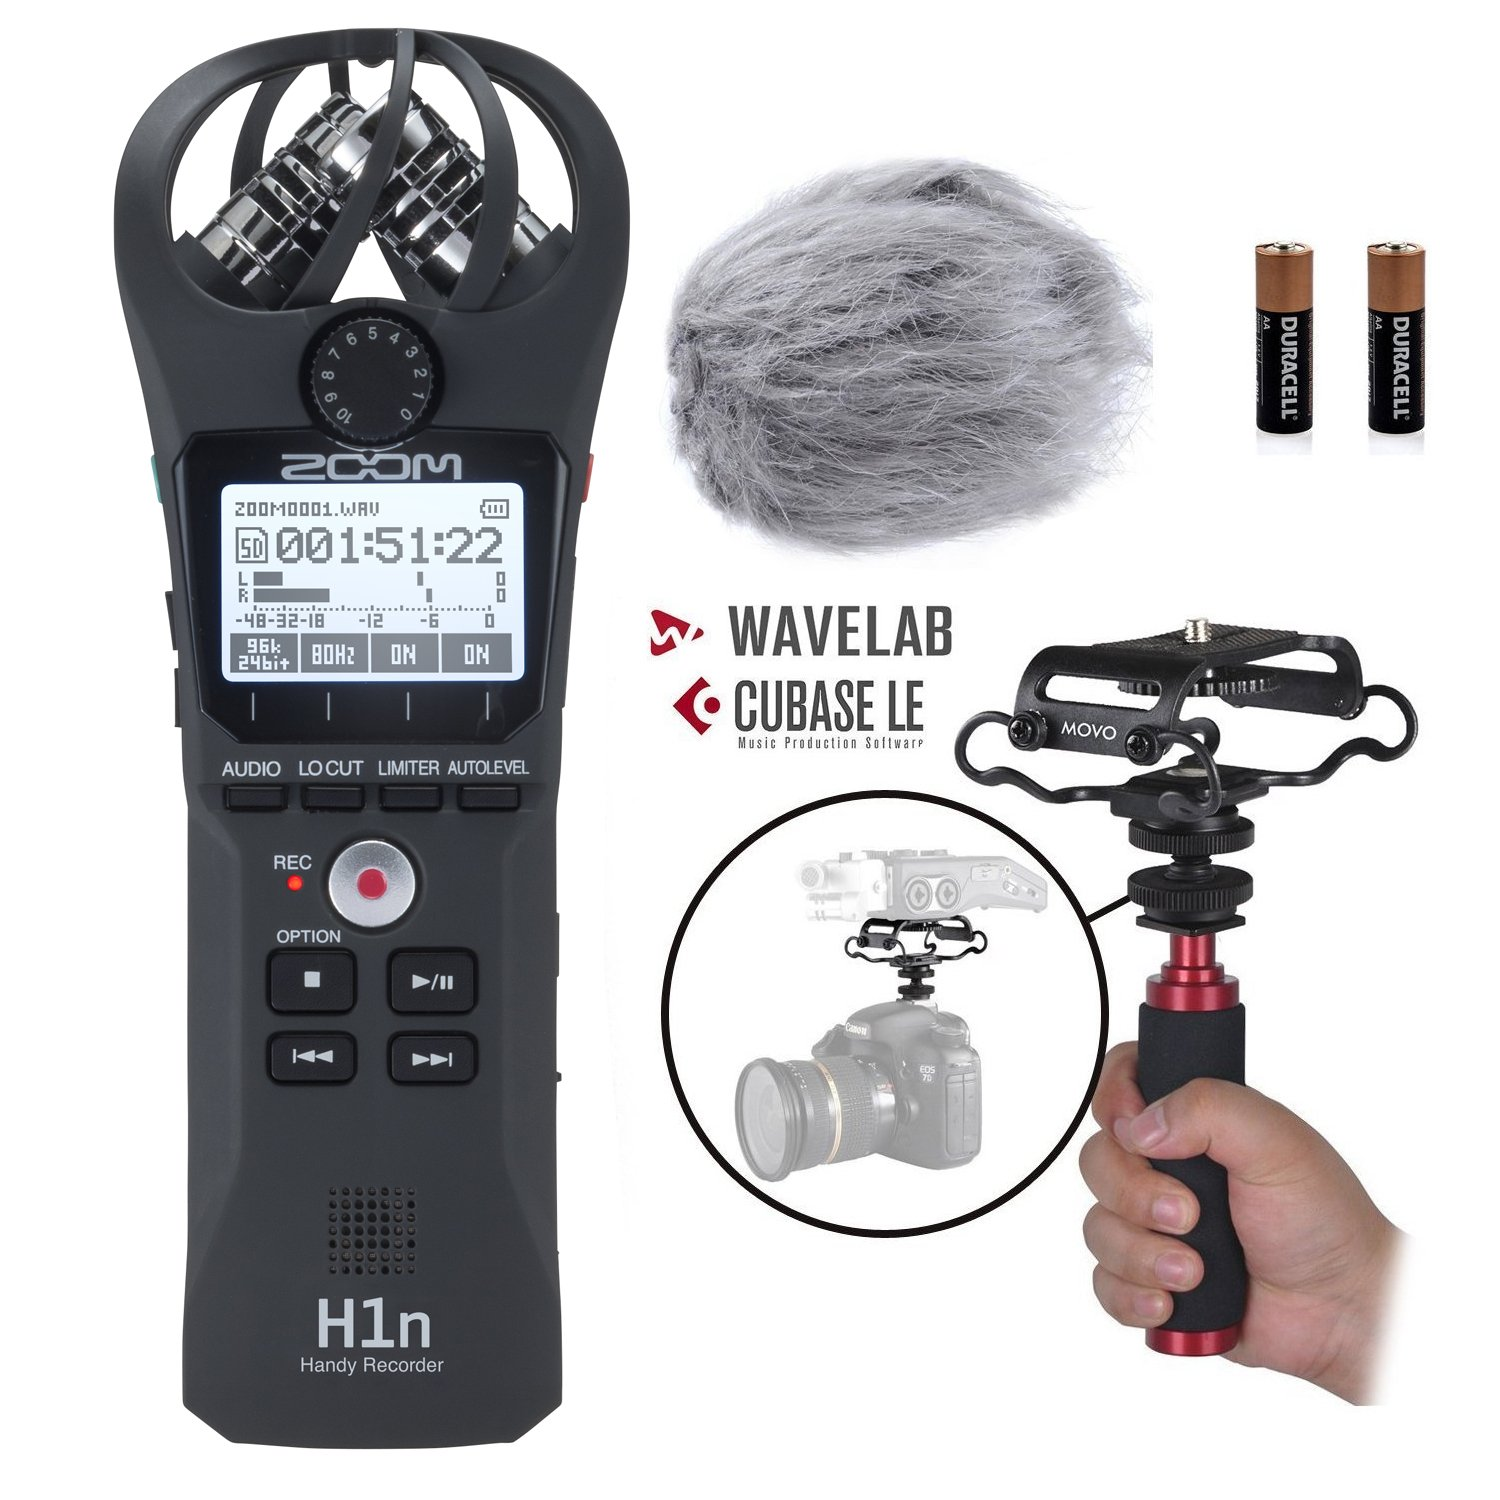 Zoom H1n Handy Portable Digital Recorder Kit with Deadcat Windscreen, Shockmount, Camera Mount and Mic Grip Movo MZK-H1n